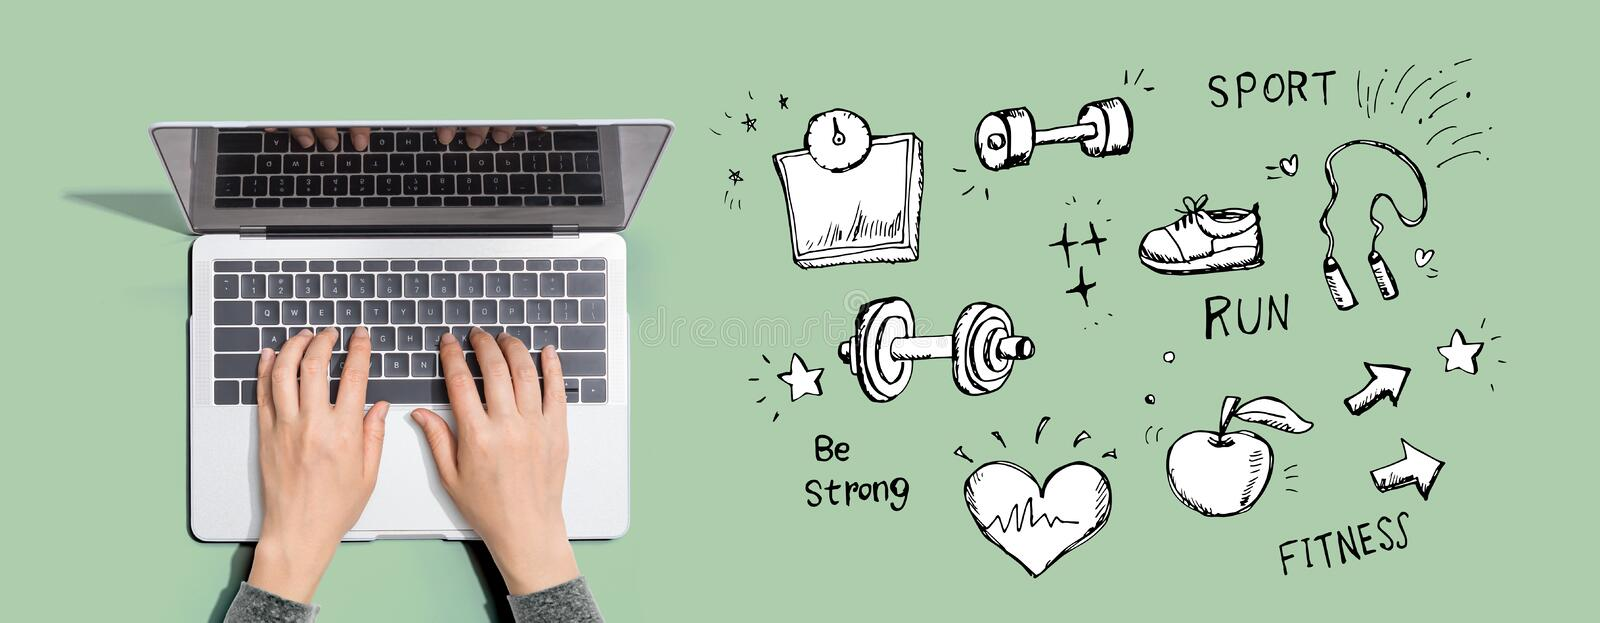 Fitness and diet with person using laptop computer. Fitness and diet with person using a laptop computer stock illustration